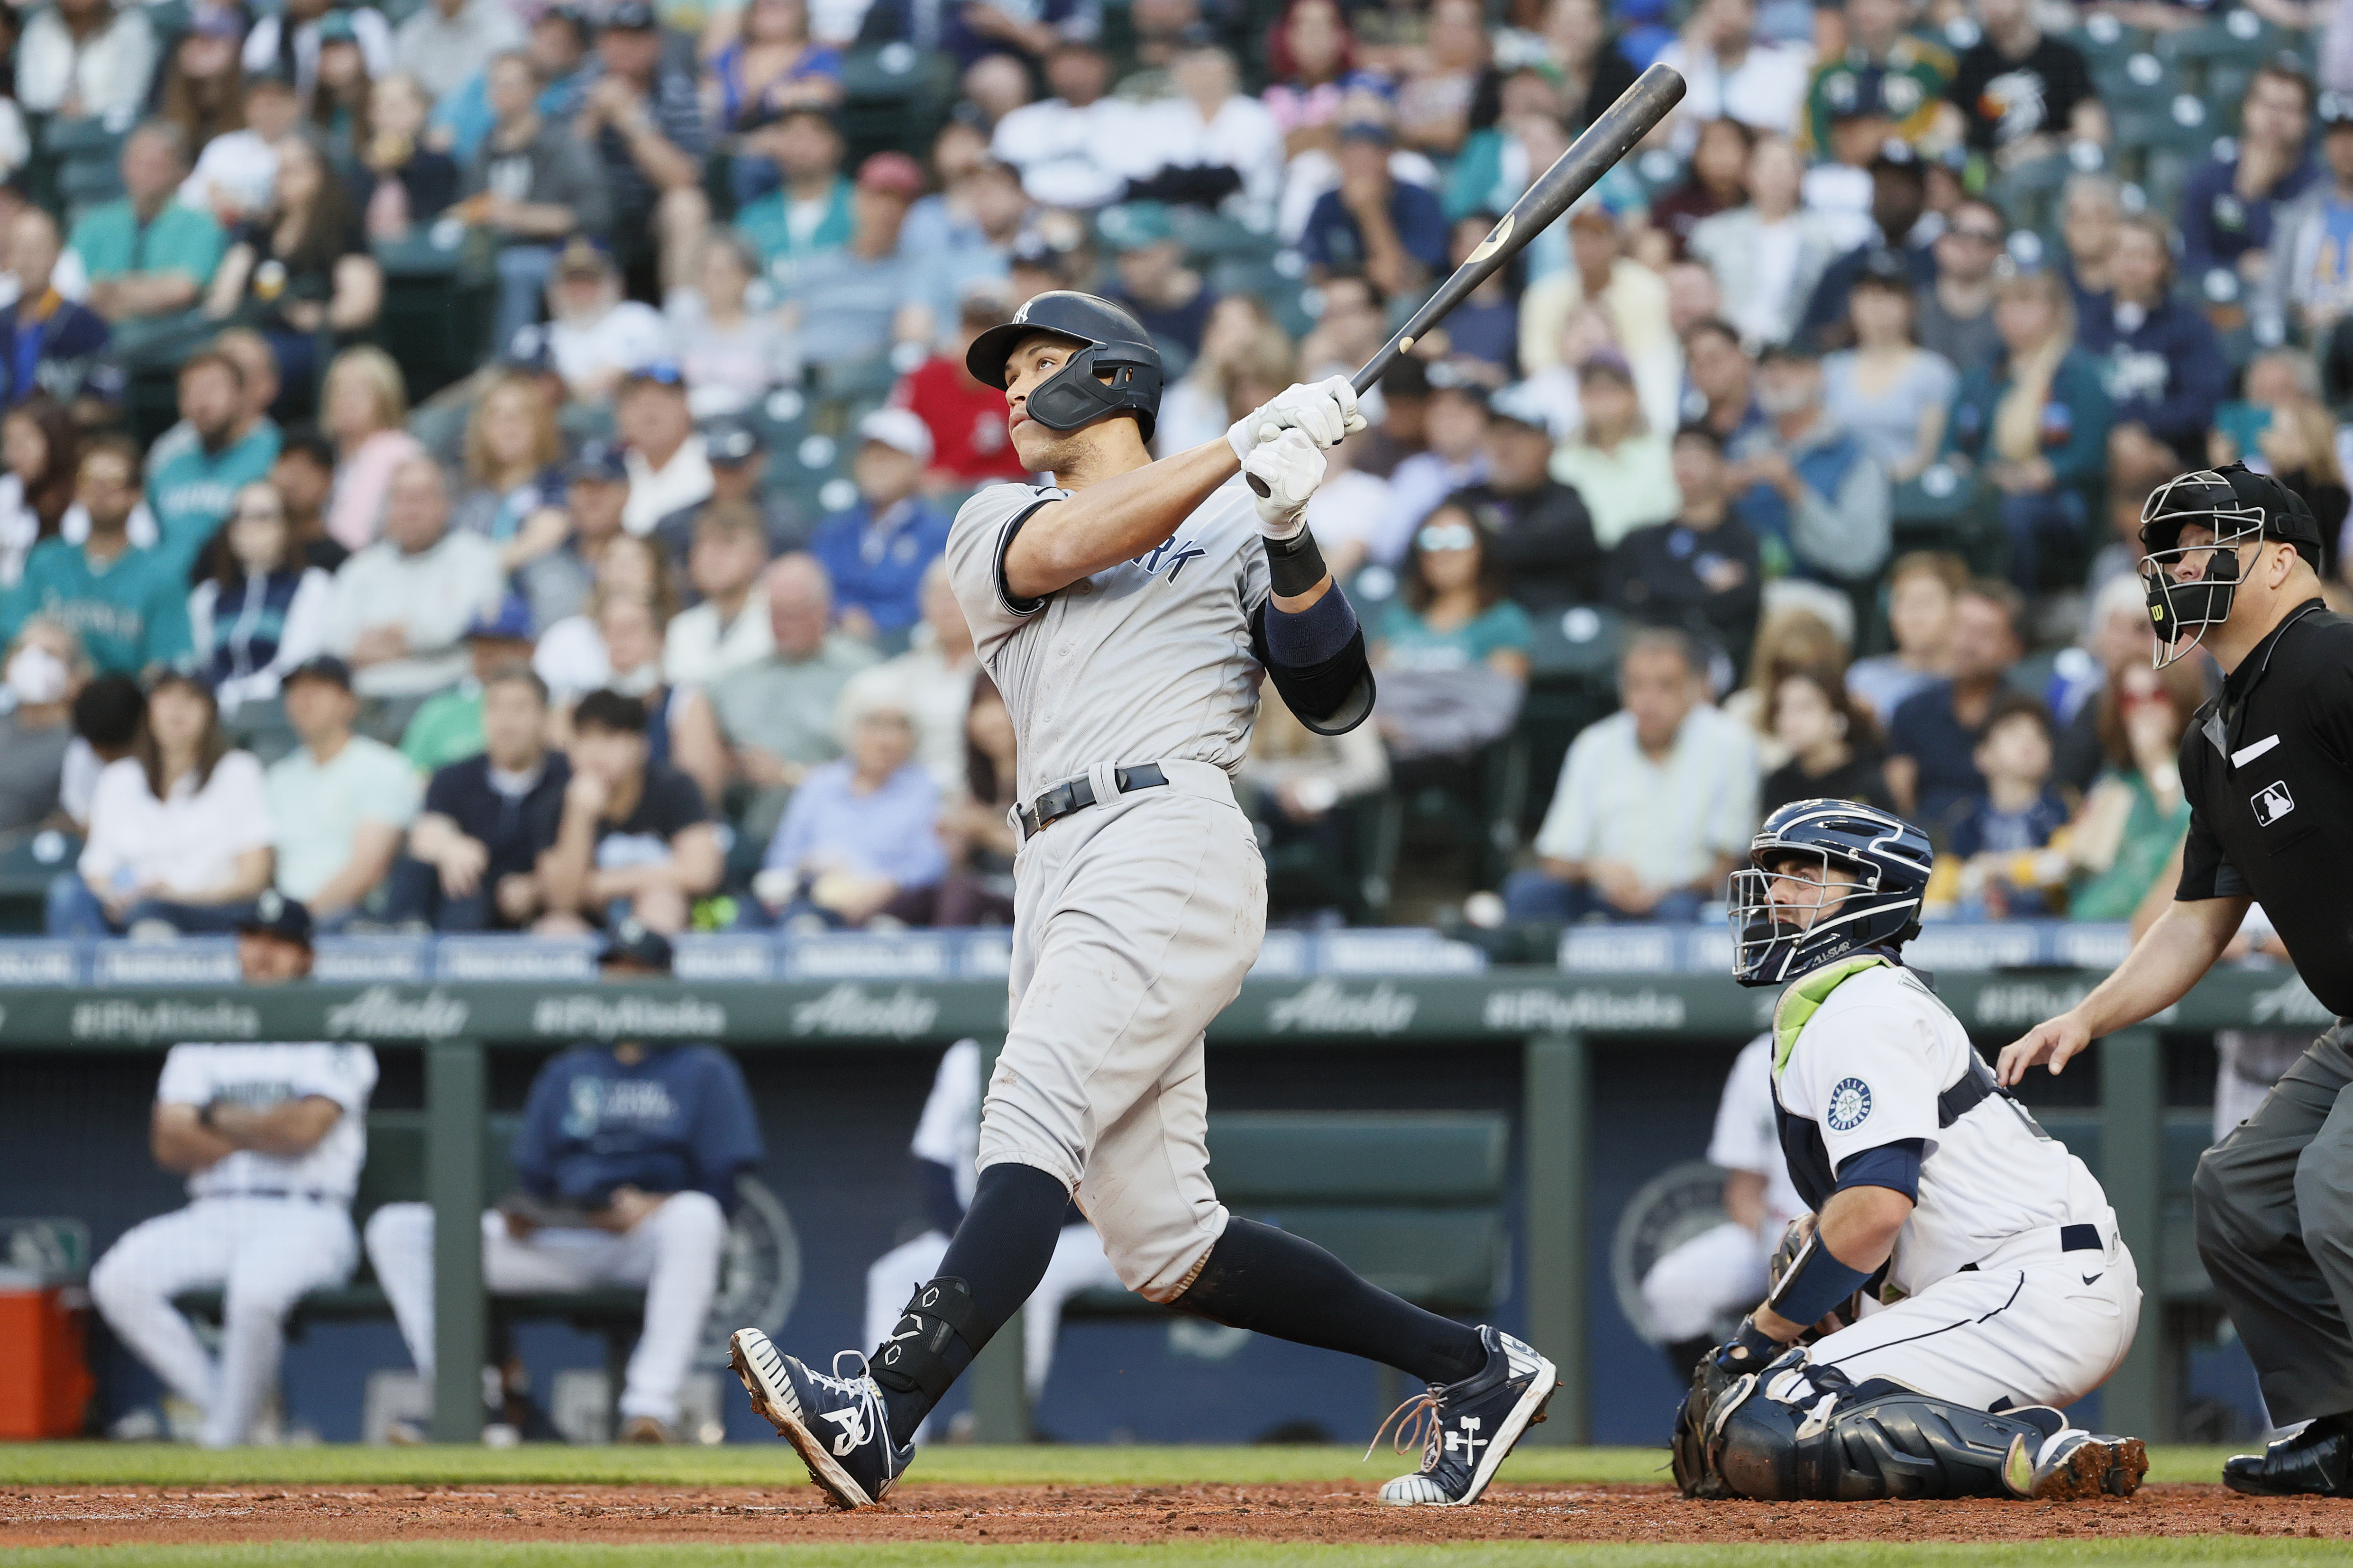 Aaron Judge #99 of the New York Yankees watches his two-run home run against the Seattle Mariners during the second inning at T-Mobile Park on July 07, 2021 in Seattle, Washington.